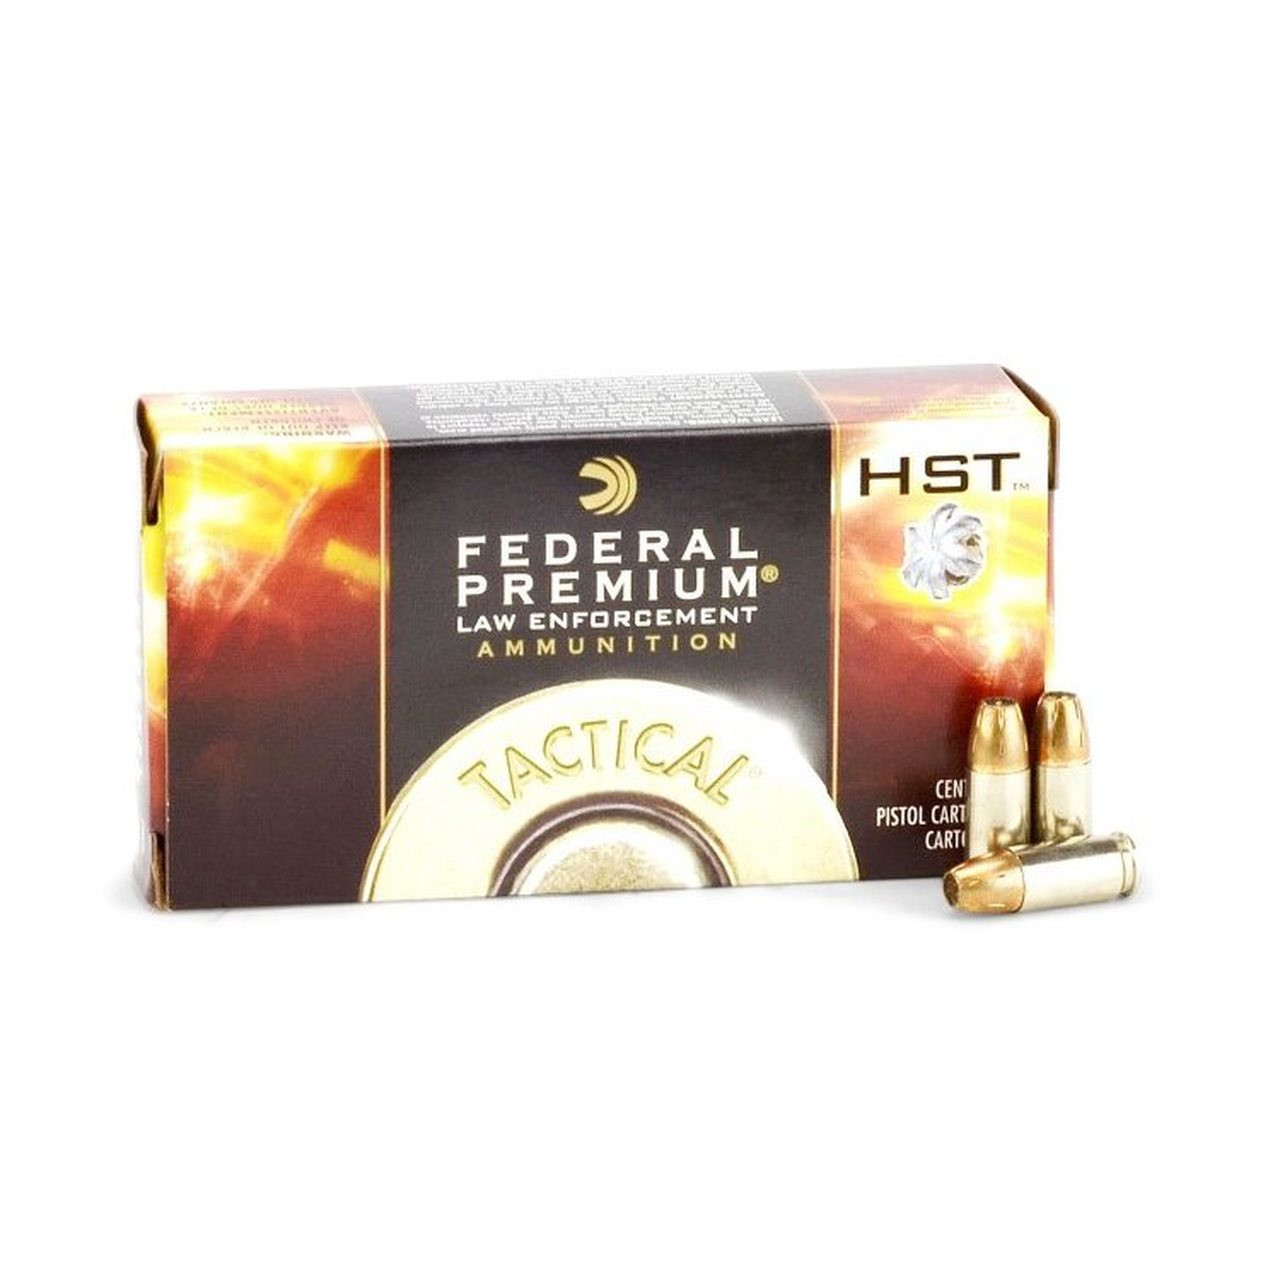 FEDERAL PREMIUM TACTICAL HST 147grn 9mm (P9HST2) - 50 ROUNDS